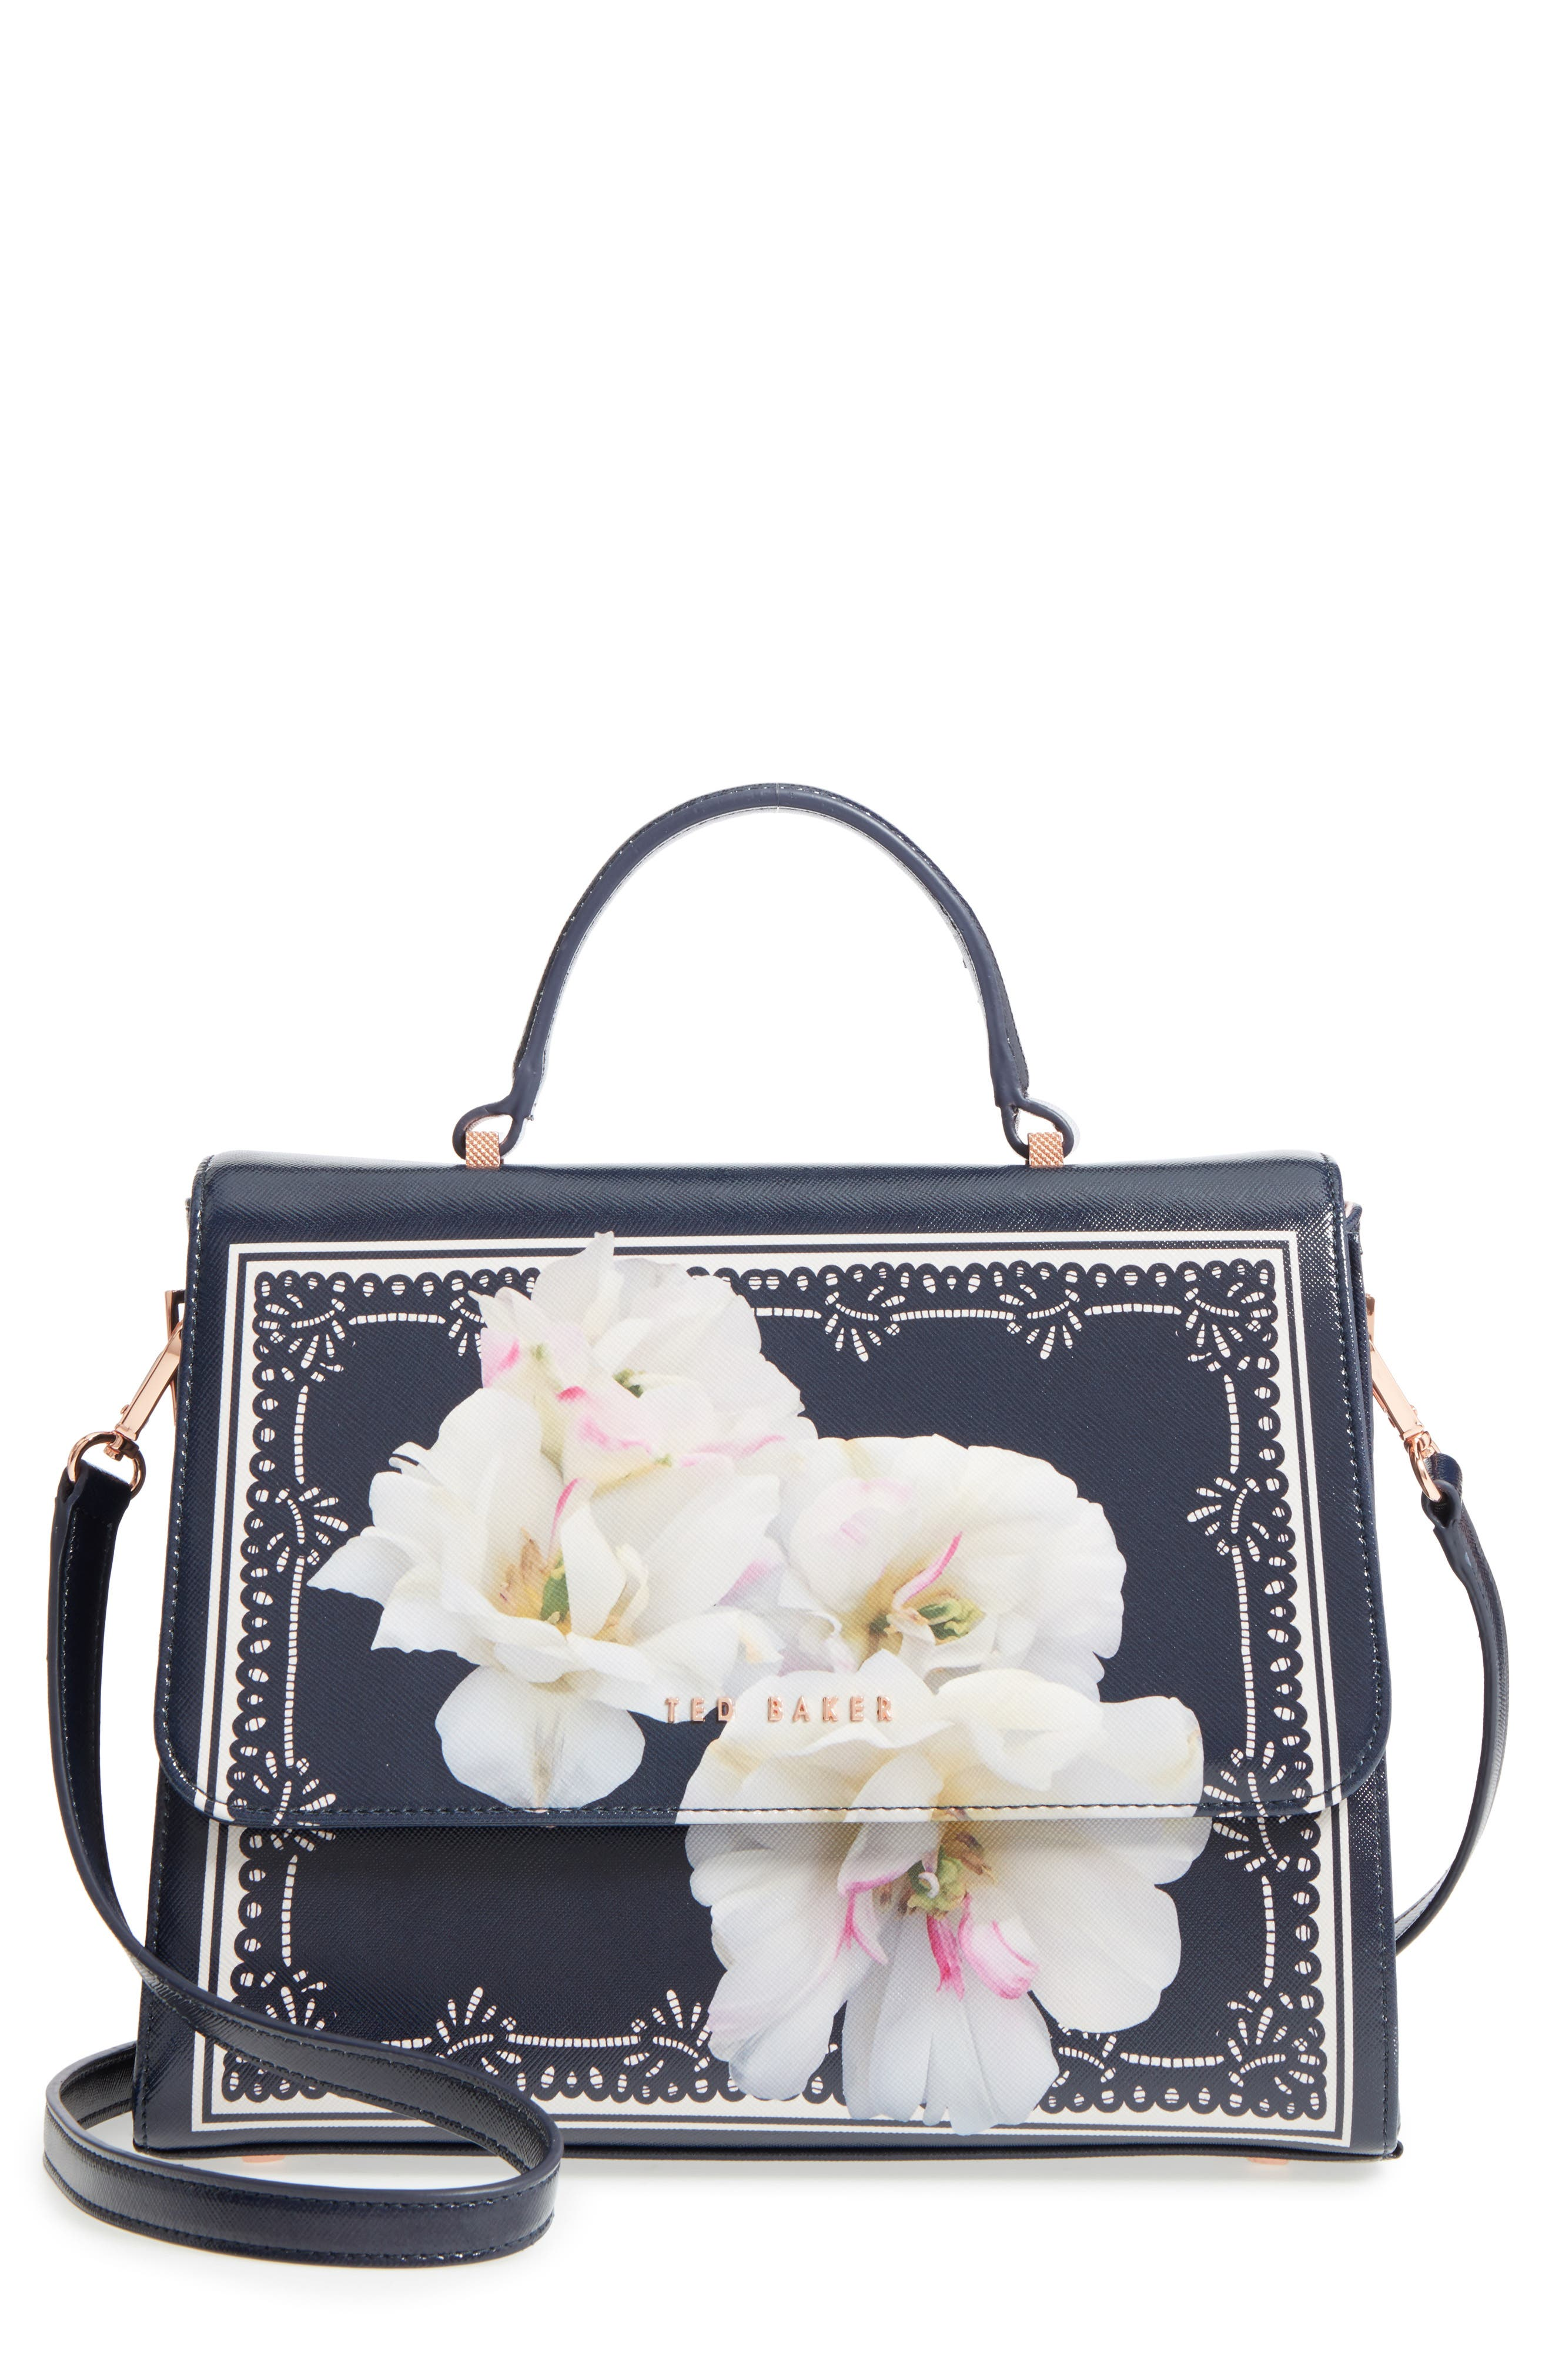 Main Image - Ted Baker London Gardenia Faux Leather Satchel